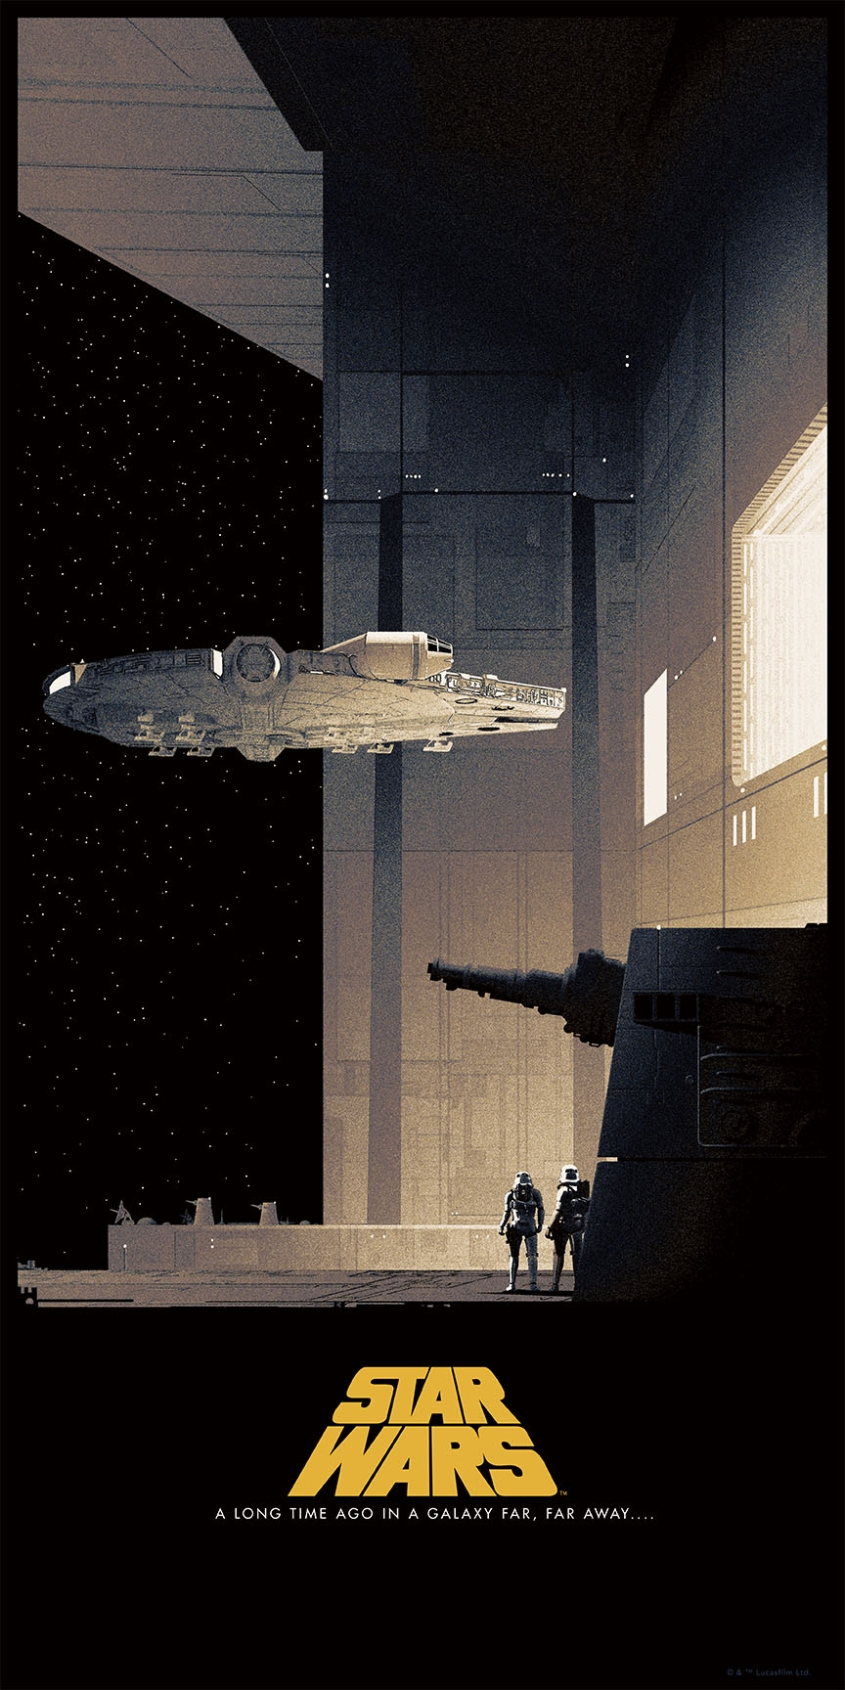 star-wars-a-new-hope-poster-matt-ferguson